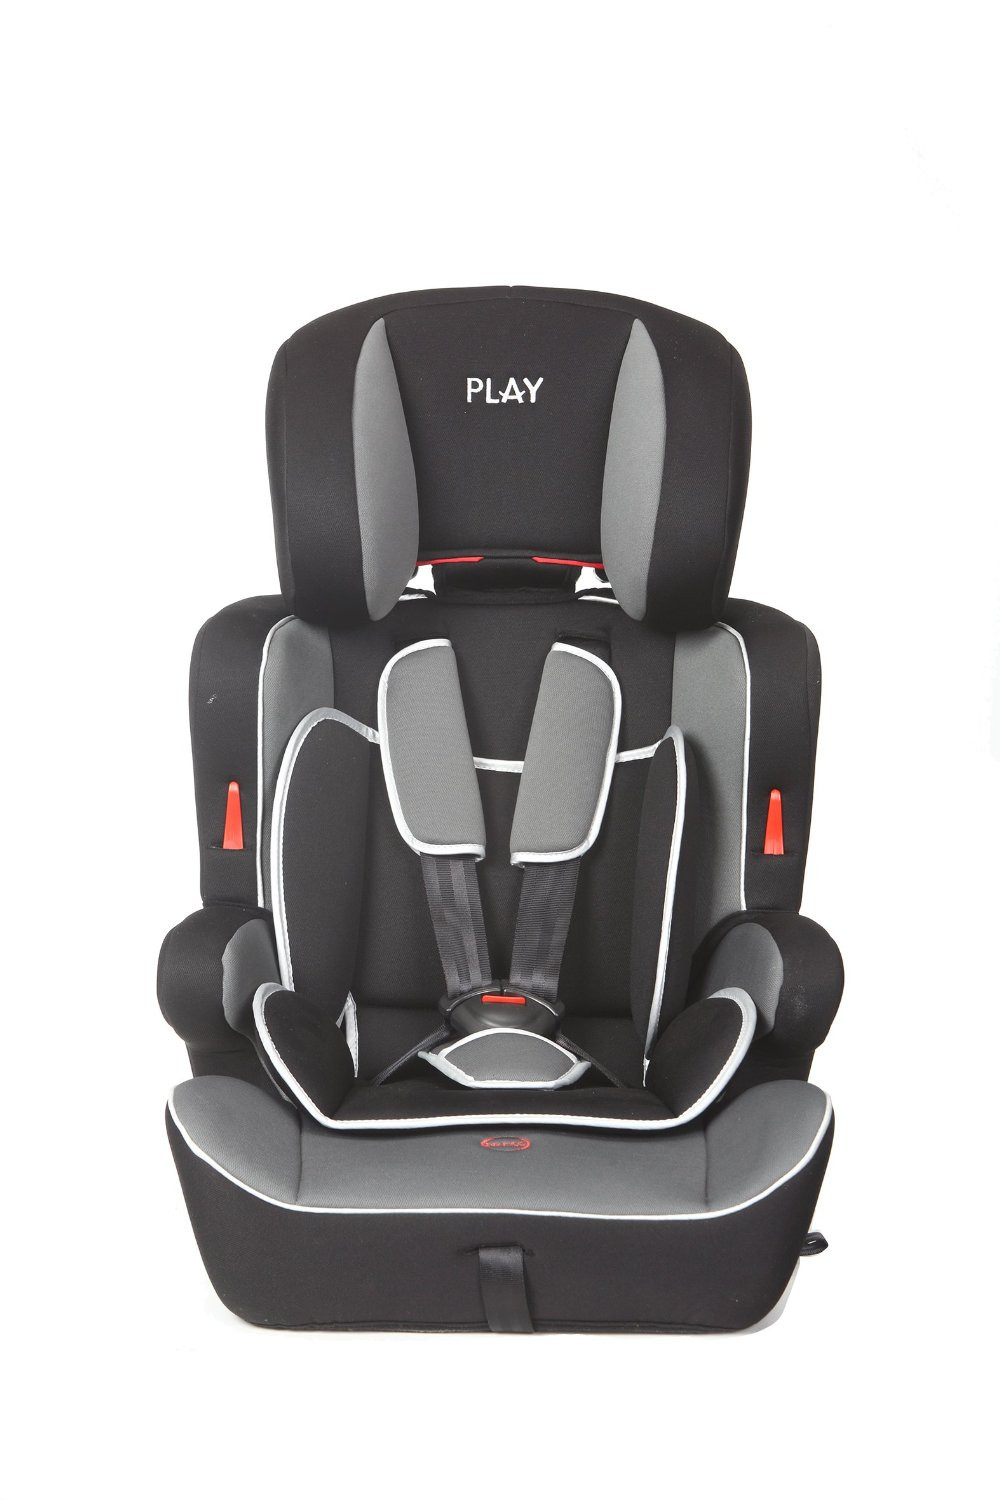 Silla De Coche Play Safe Ten Grupo 1 2 3 Casualplay Opiniones